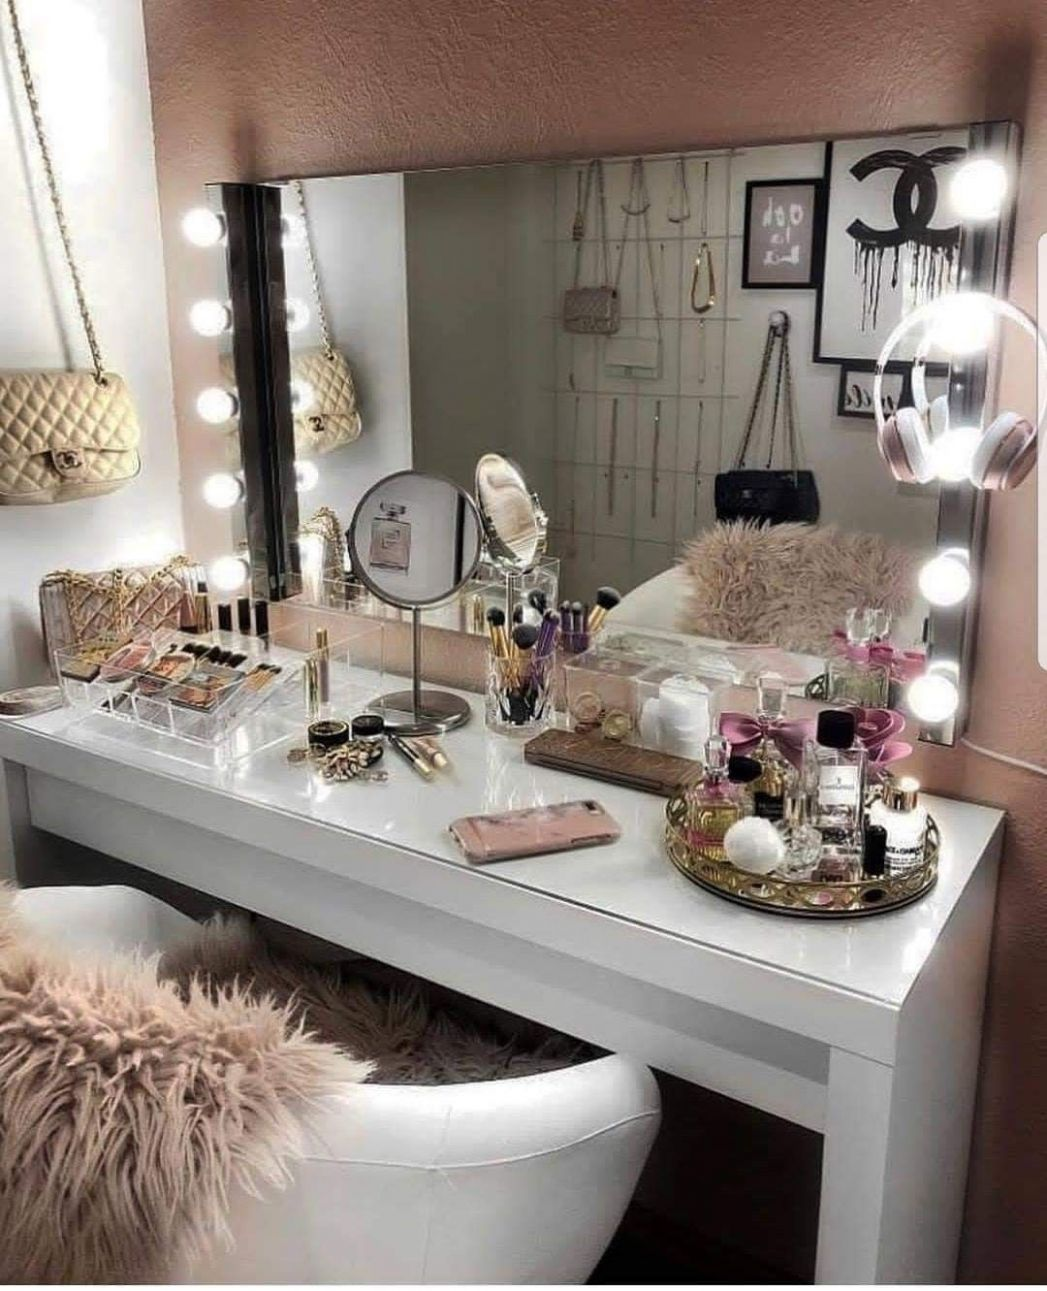 Makeup Organizers And Storage Ideas For Makeup Junkies | Stylish ..